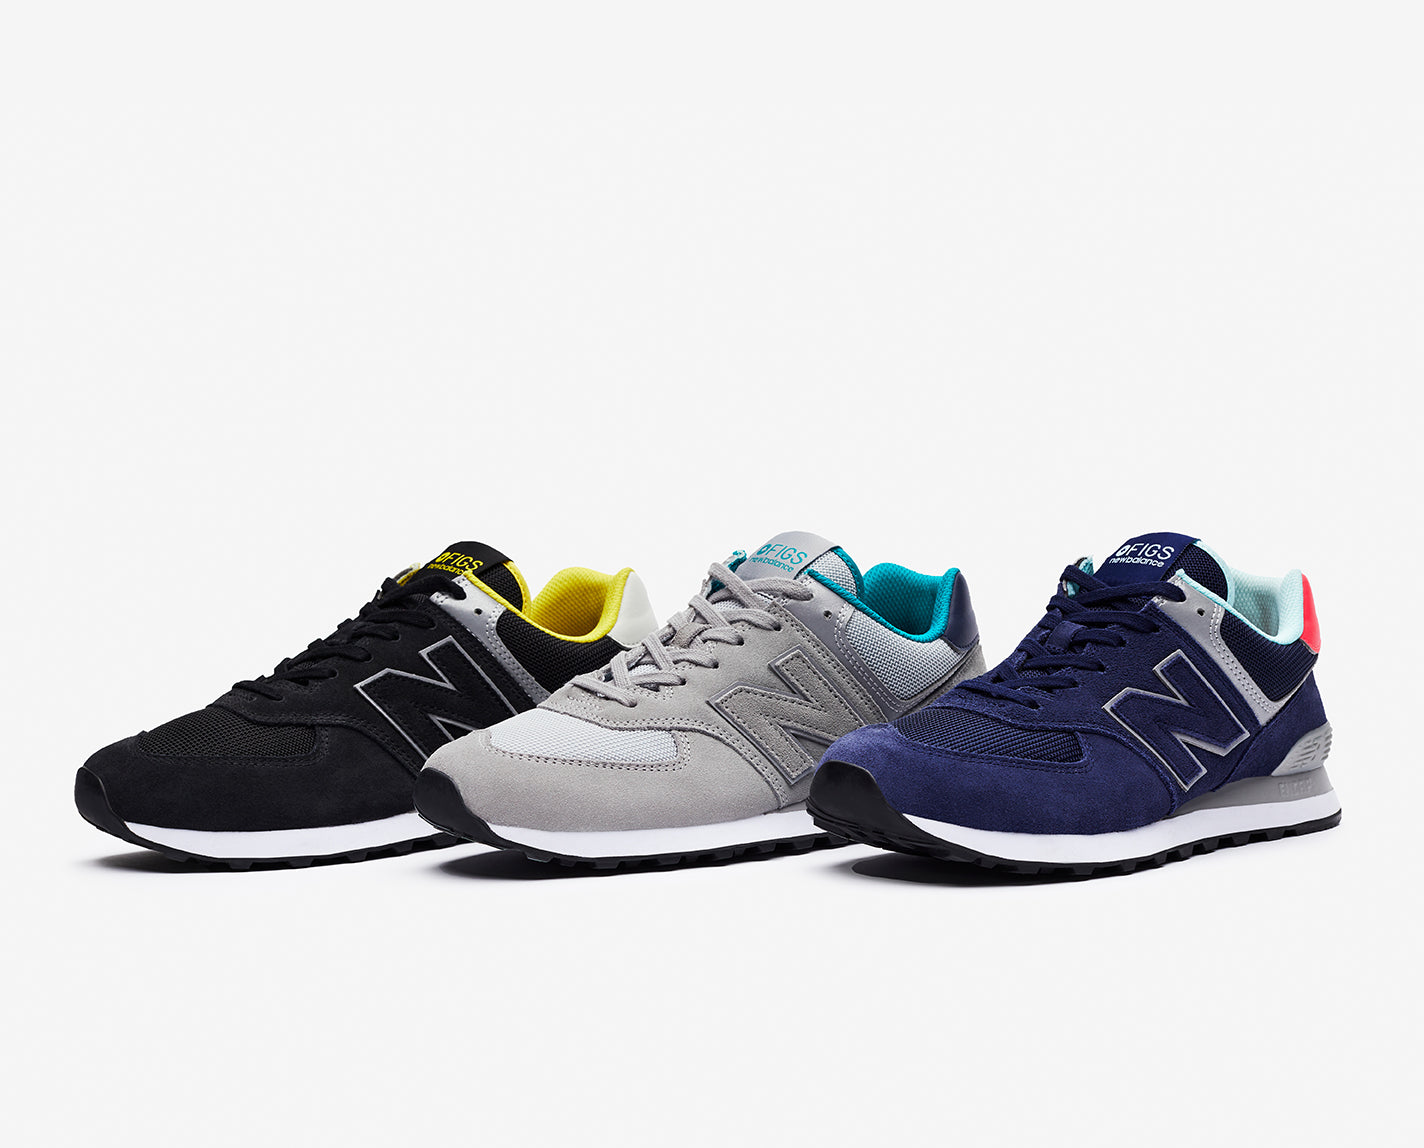 A tried-and-true classic constructed for all-day performance. The FIGS   New Balance 574 Capsule Collection features an iconic silhouette that's always in style, updated with premium materials like powerful ENCAP® midsole technology and super soft and supportive foam cushioning. It's your new go-12+-hours-in-complete-comfort shoe.